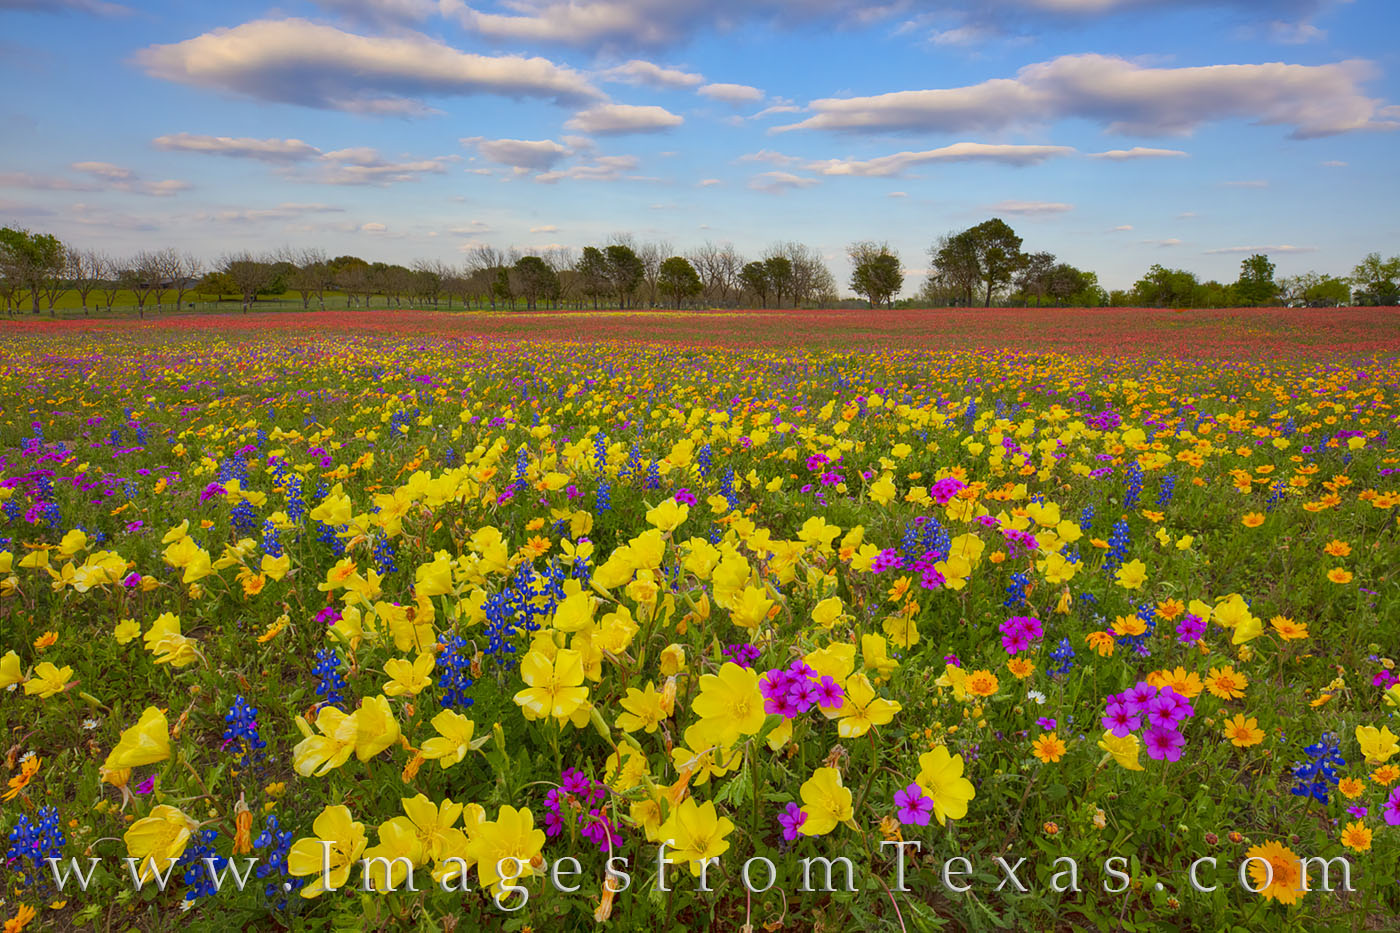 Wildflowers were plentiful and colorful on this cool late March evening in New Berlin, Texas. Thanks to the kindness of some...